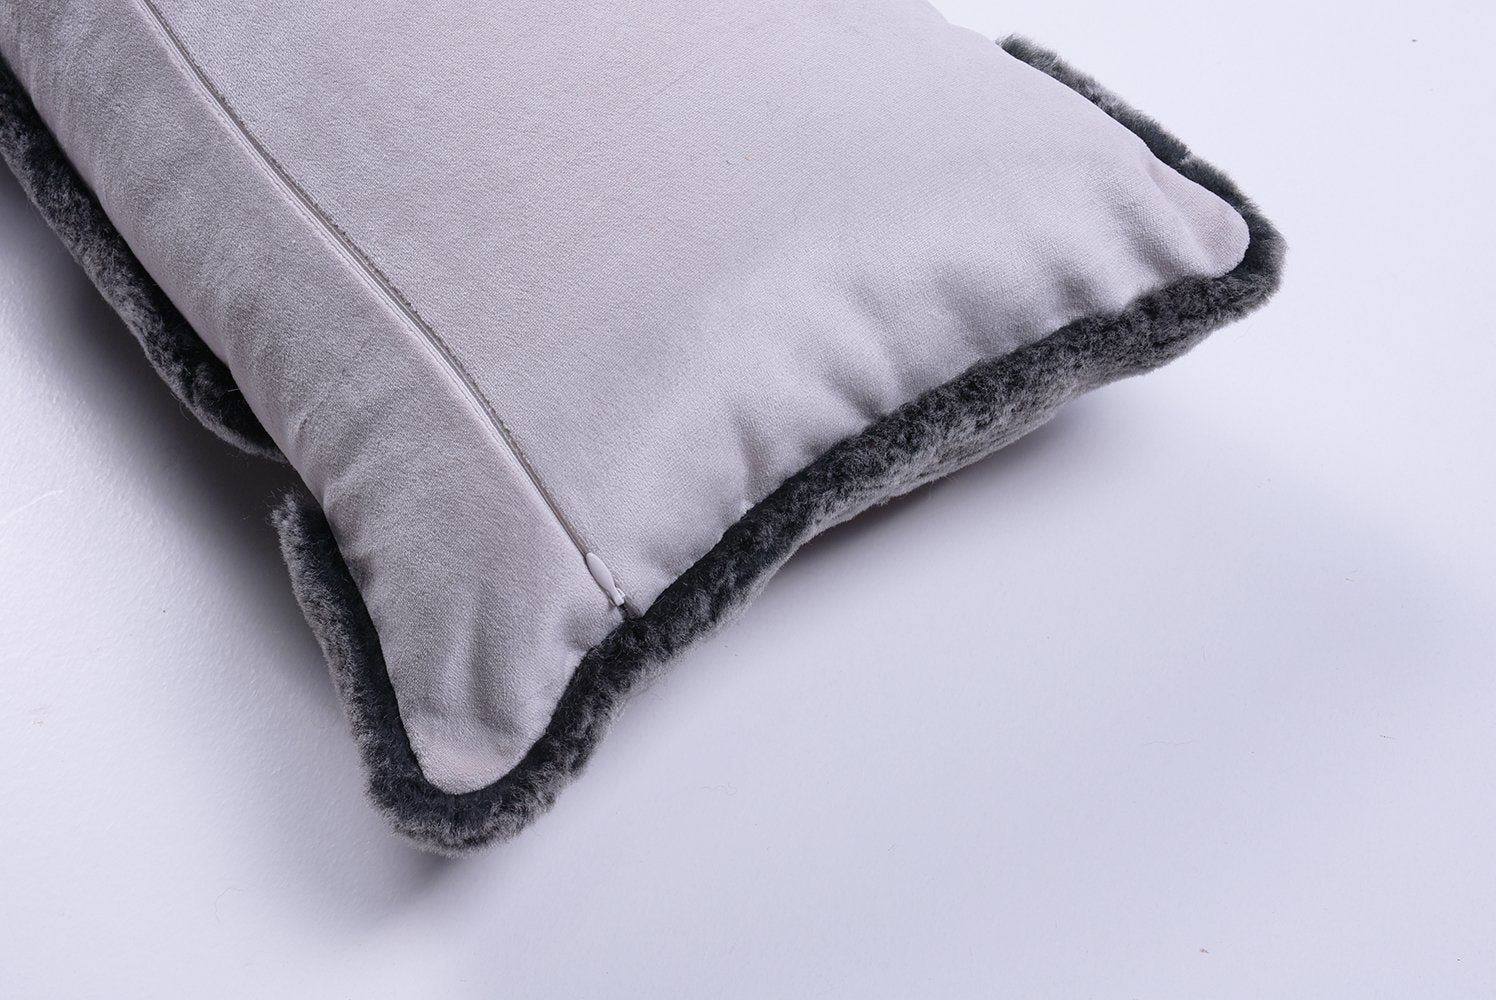 Shearling Charcoal Metallic Leather Lumbar Pillow